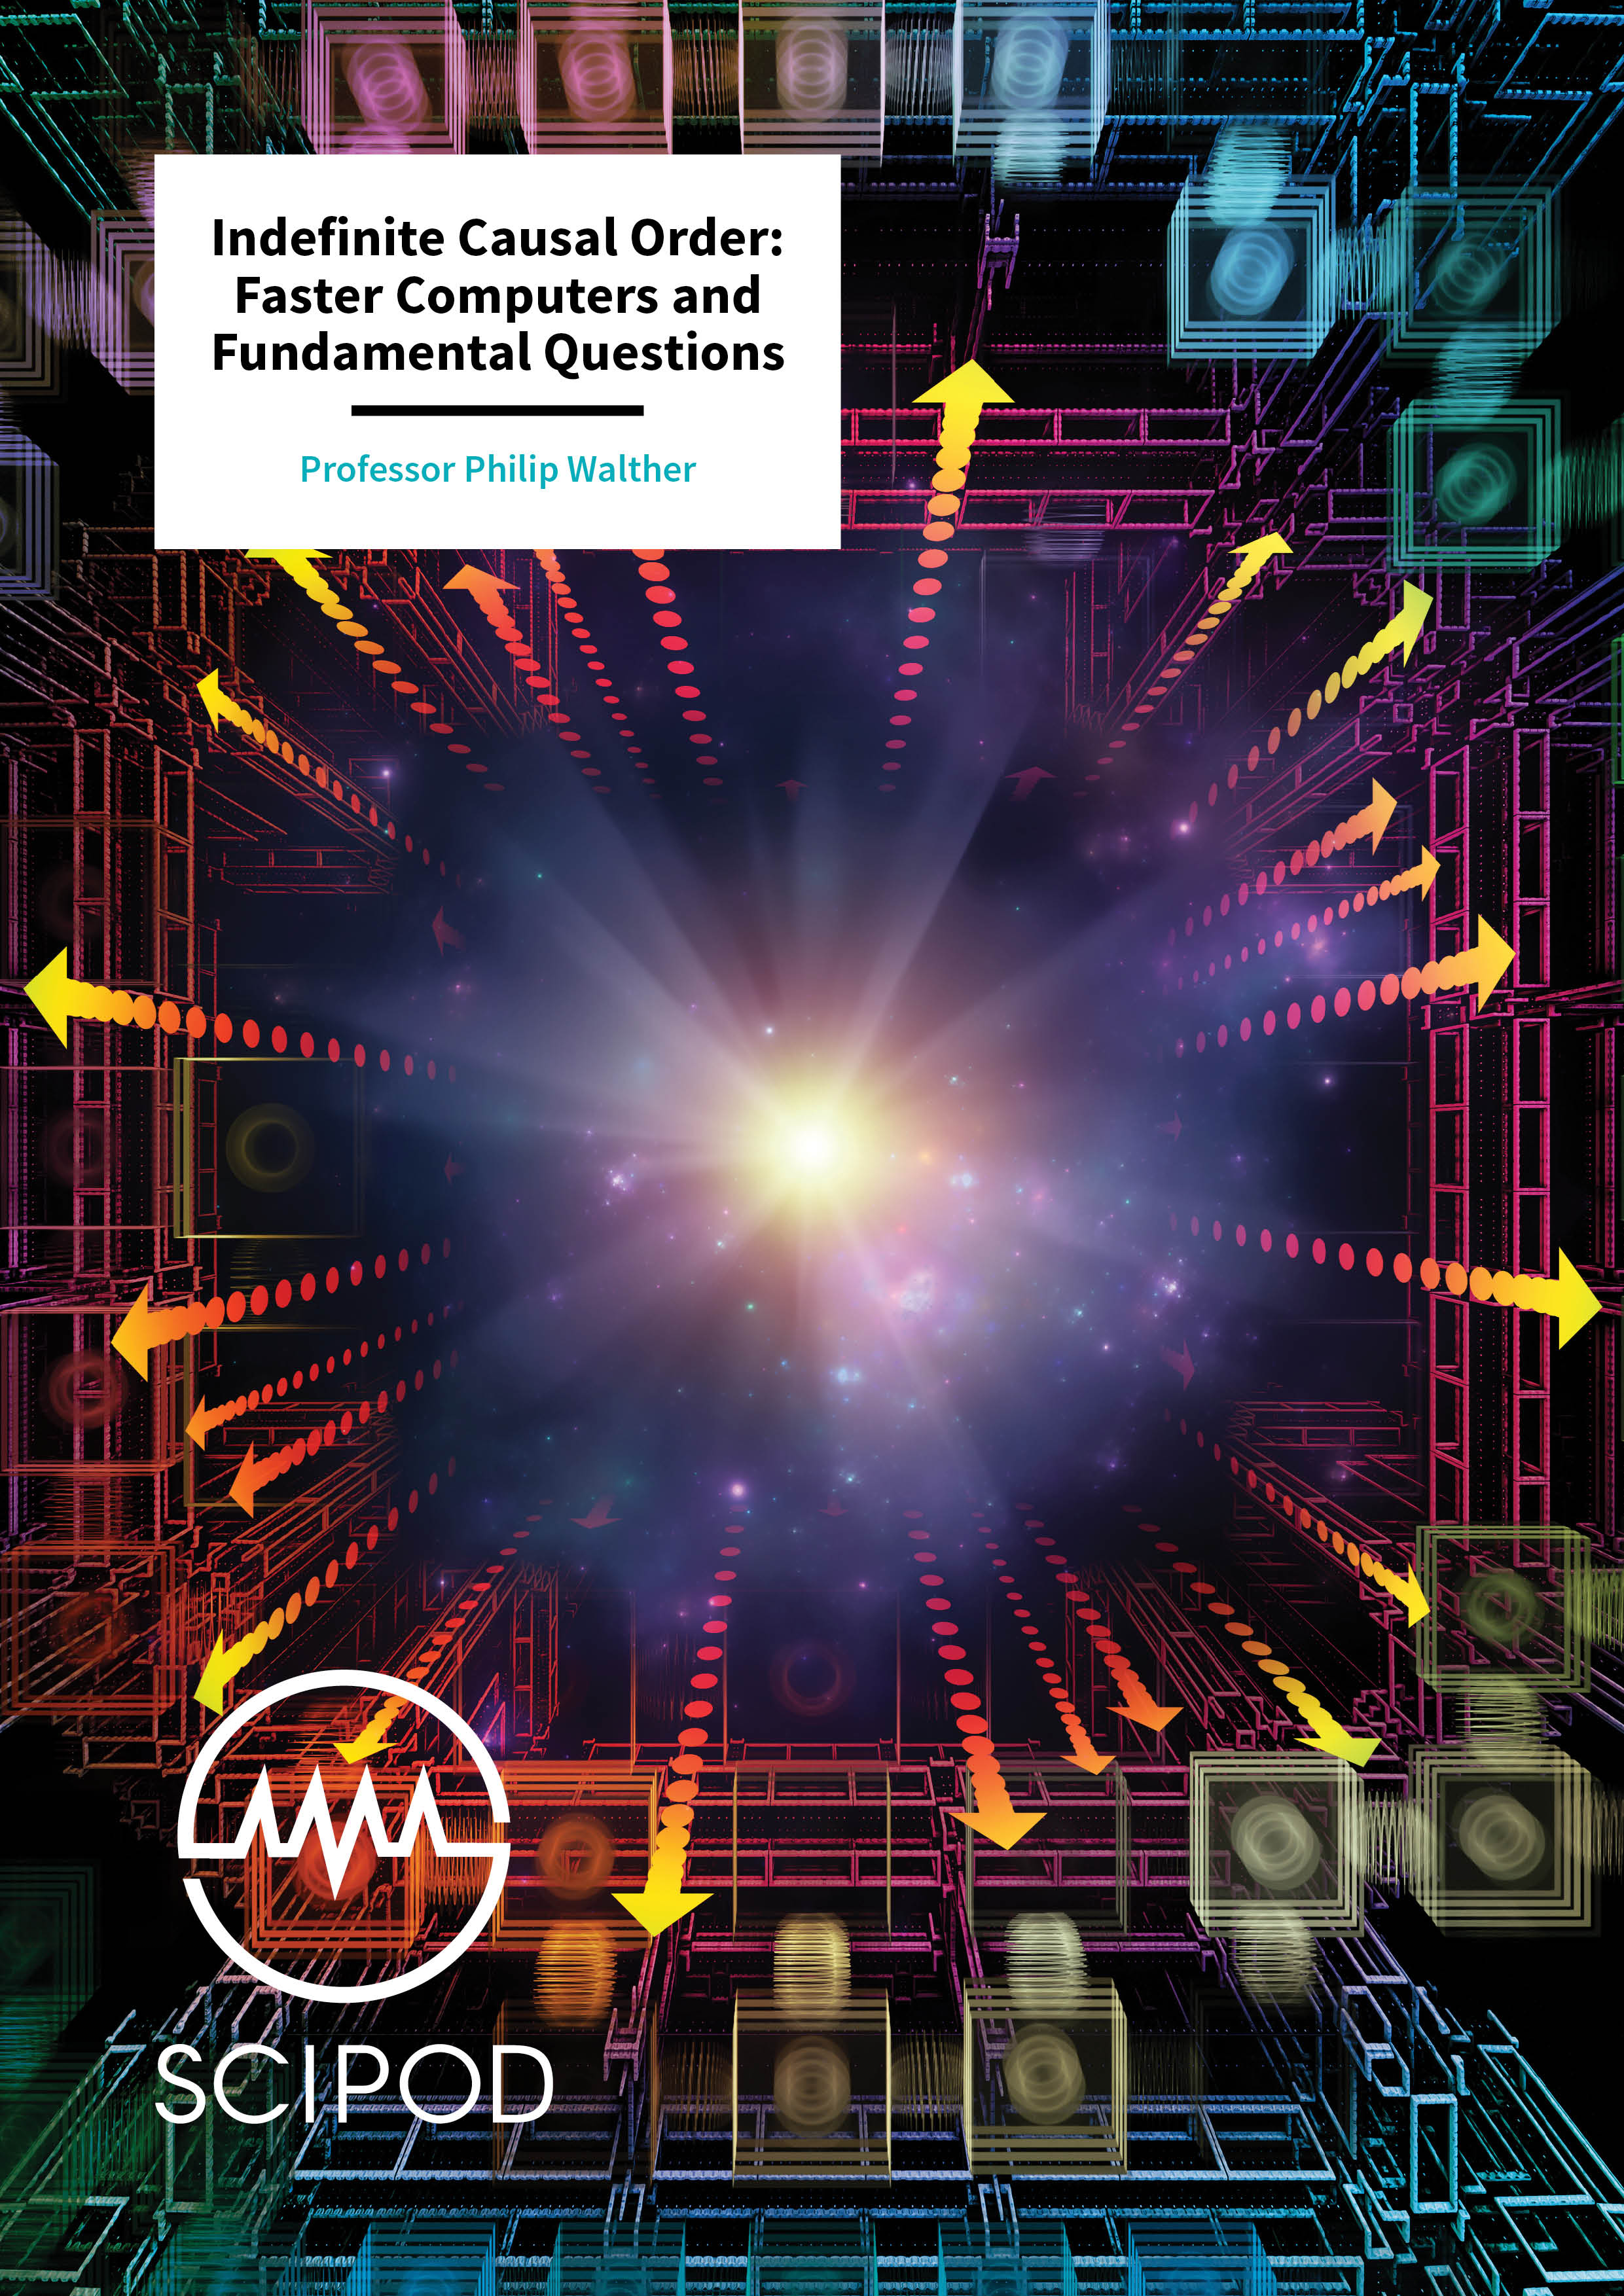 Indefinite Causal Order, Faster Computers and Fundamental Questions – Professor Philip Walther, University of Vienna